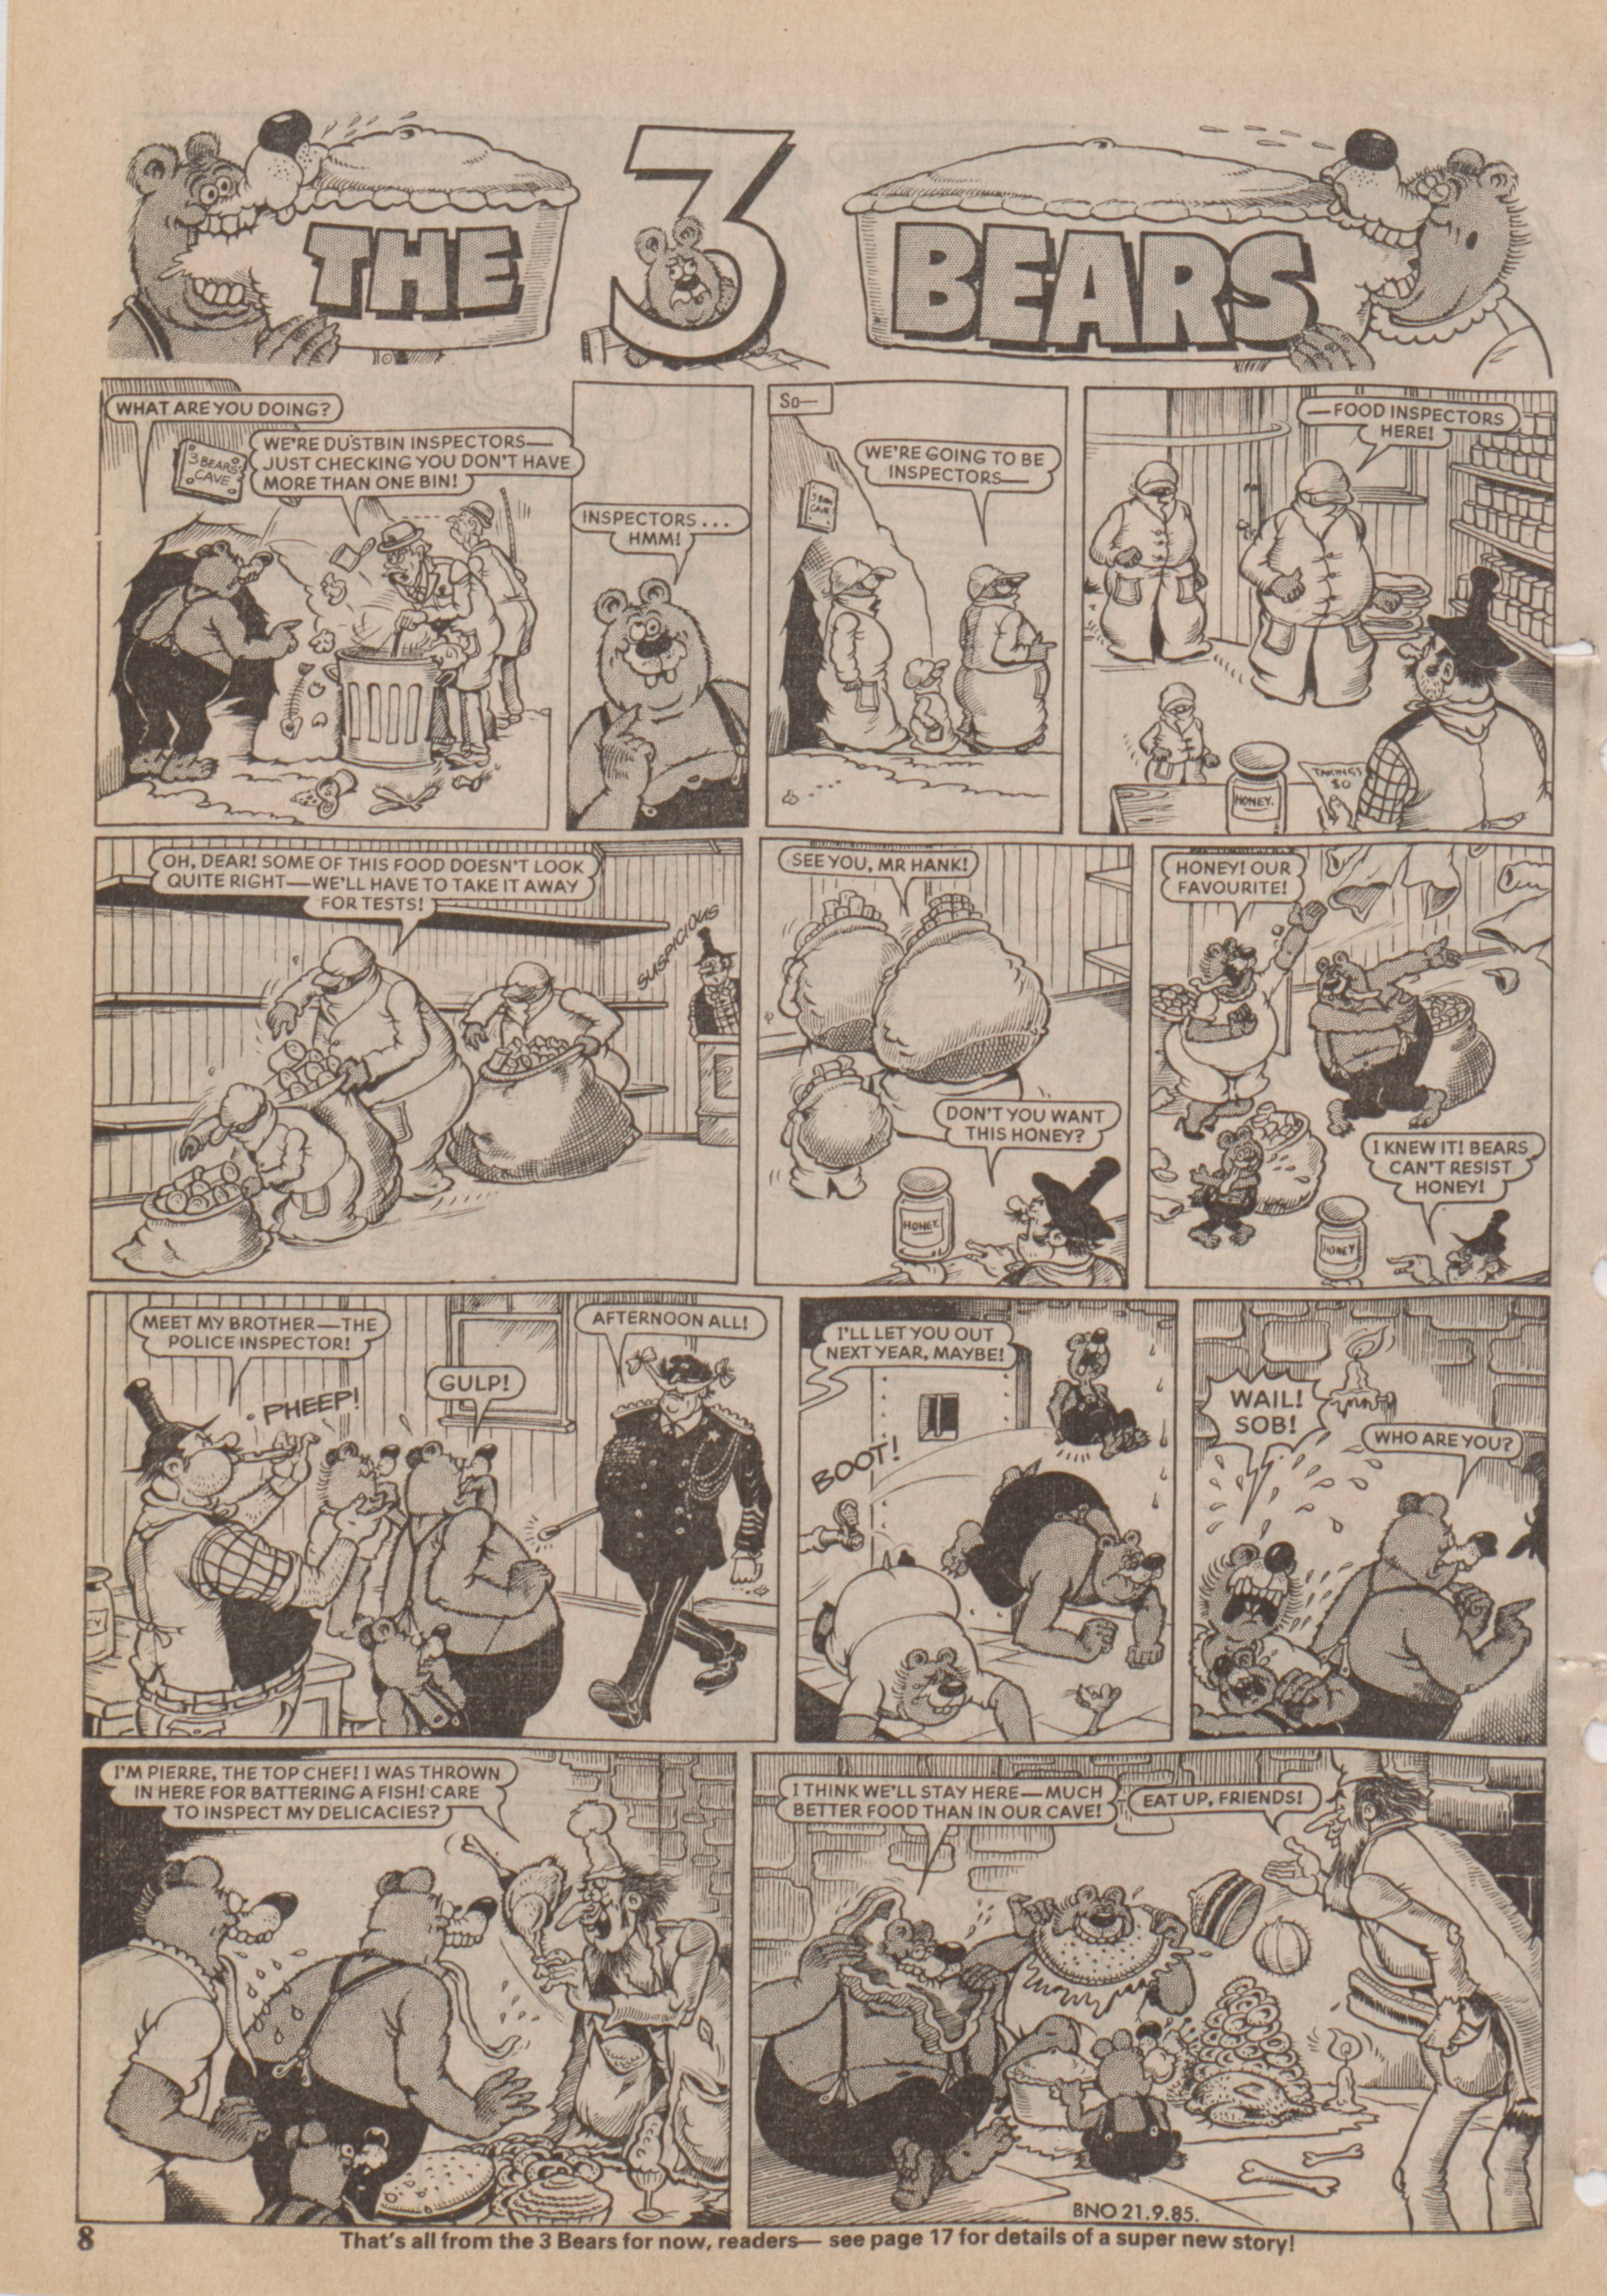 The 3 Bears from Beano No. 2253, 21.9.1985